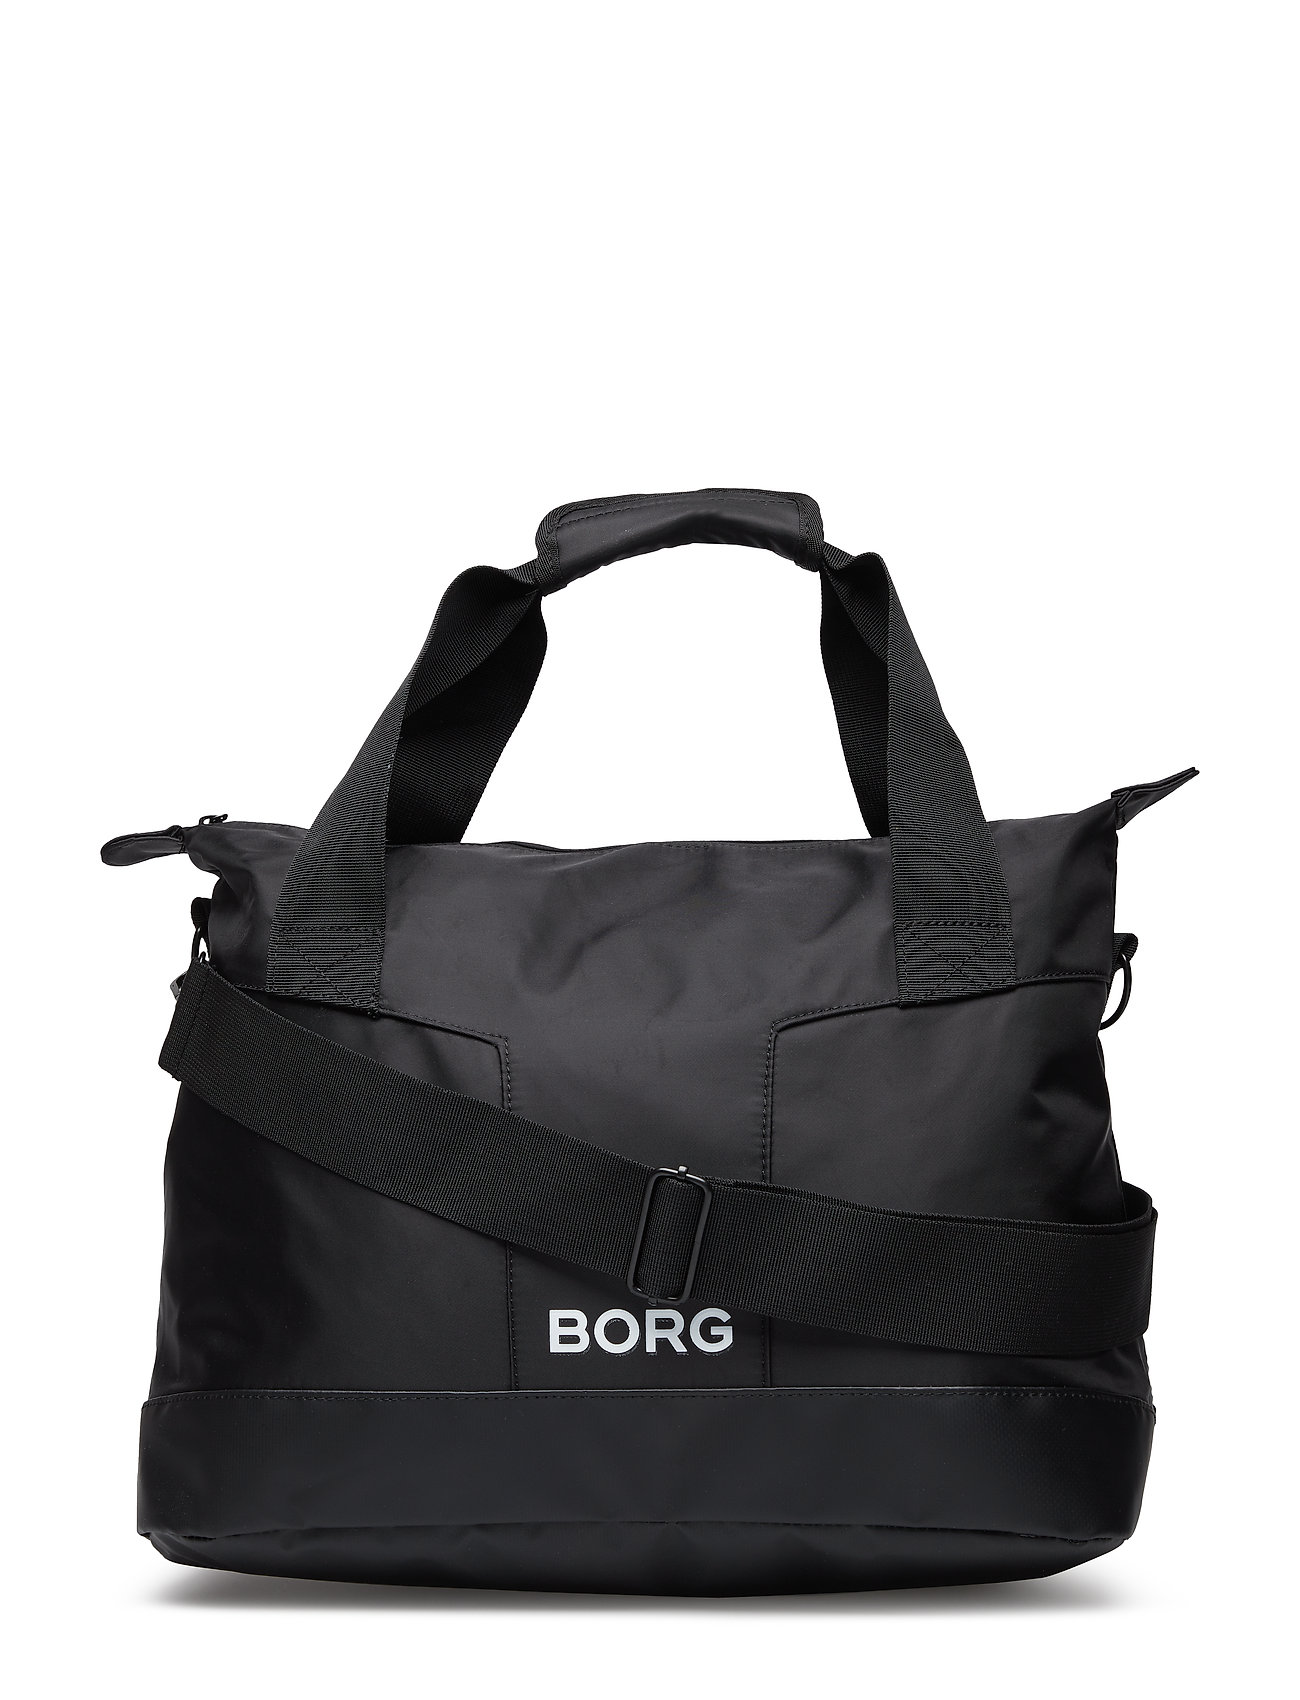 Björn Borg Bags SOPHIE/SPORTS BAG / Black